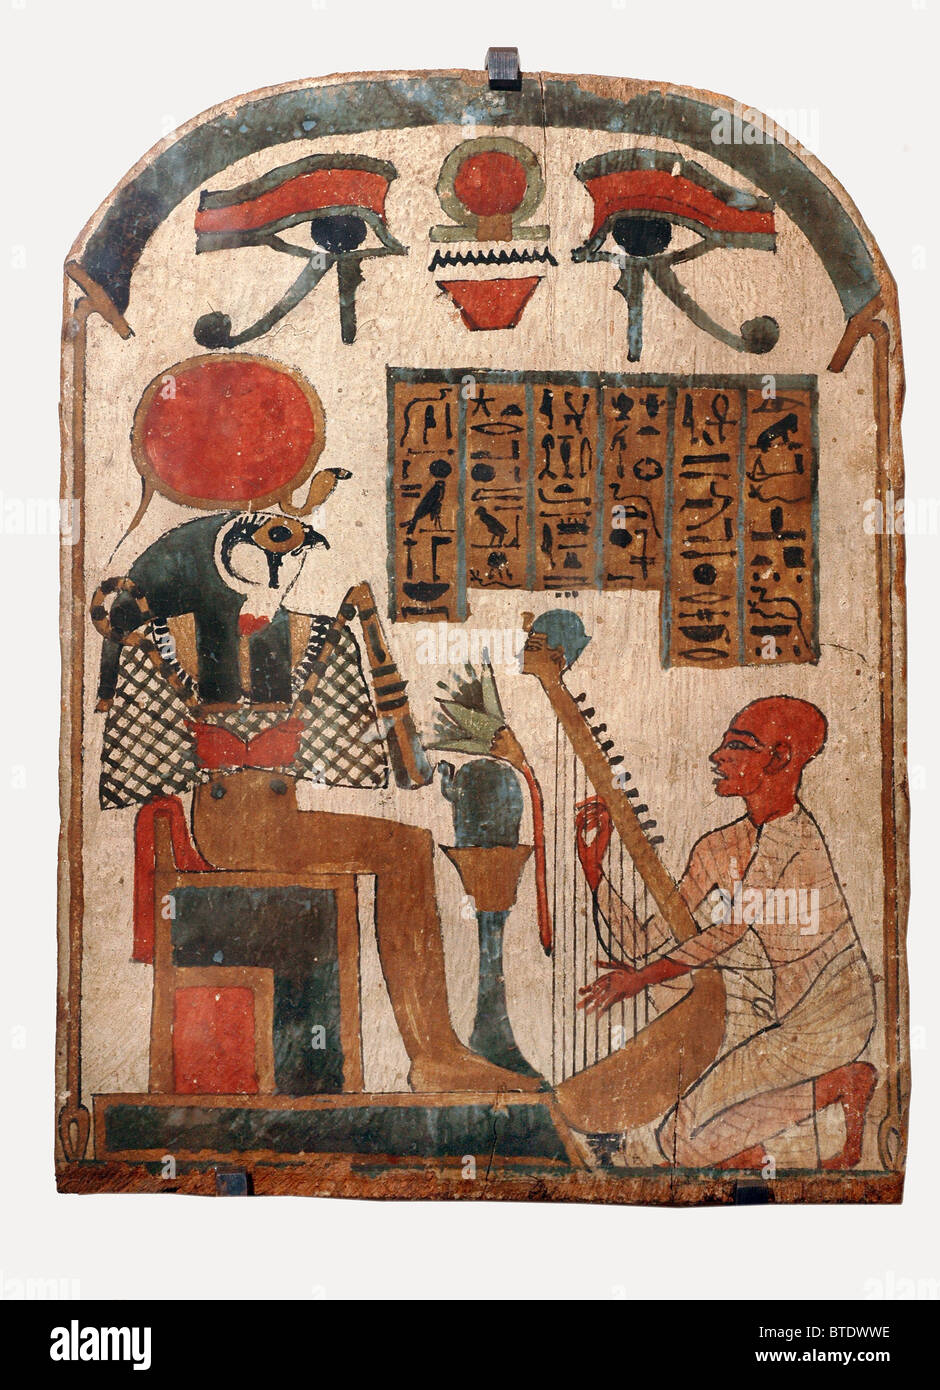 5343. Harp player worshiping the god Horus, the ancient Egyptian god of the sun, son of Osiris and Isis, represented - Stock Image